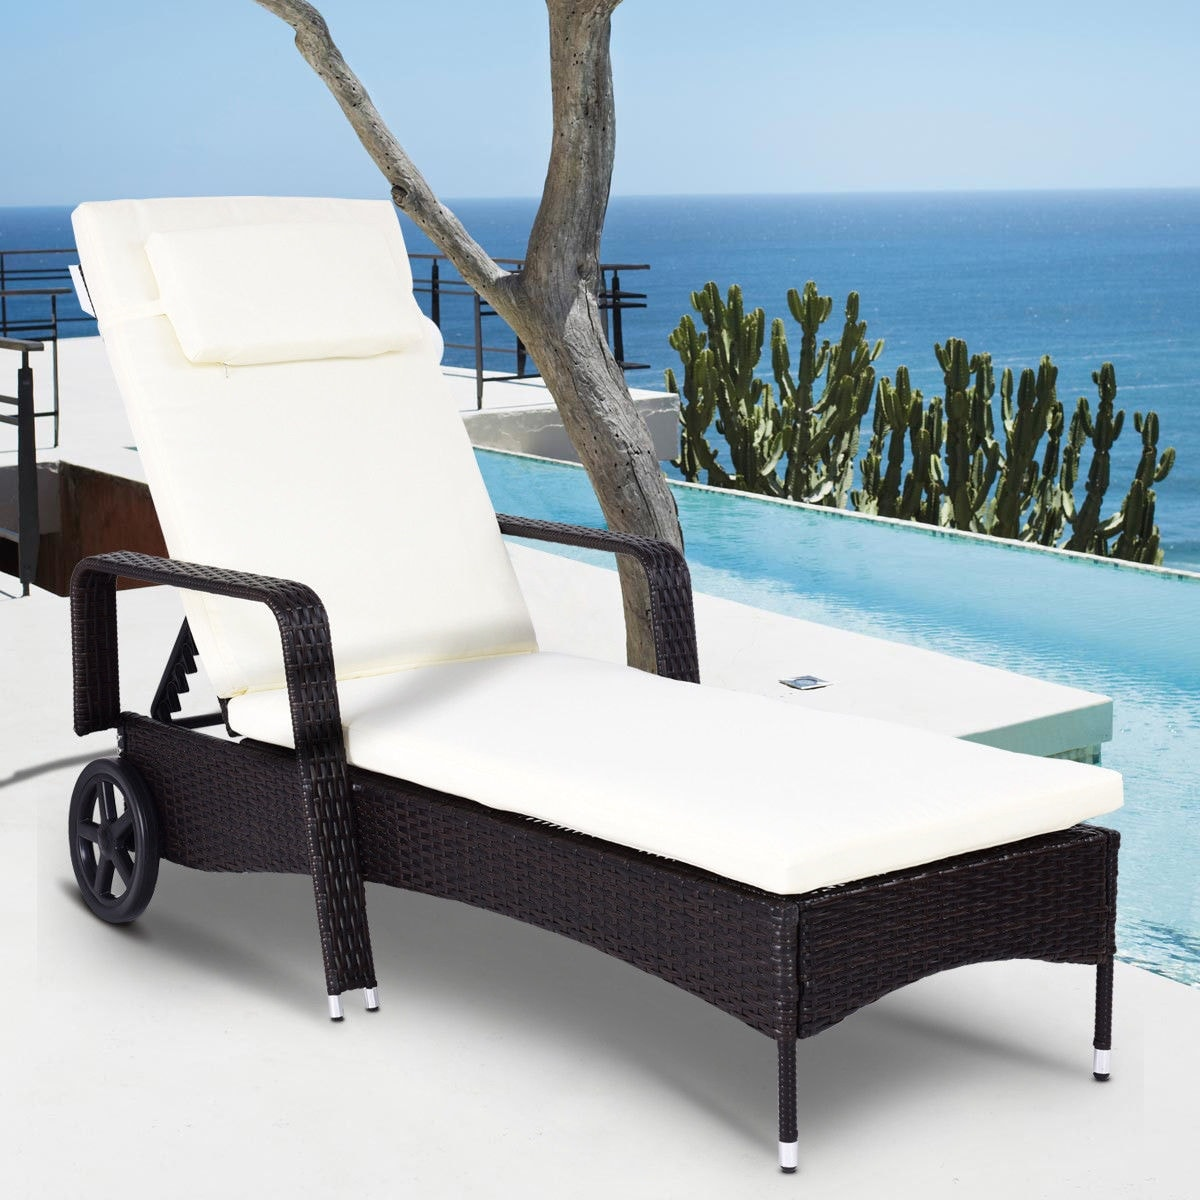 Costway Outdoor Chaise Lounge Chair Recliner Cushioned Patio Furniture Adjule Wheels Brown Free Shipping Today 20445689